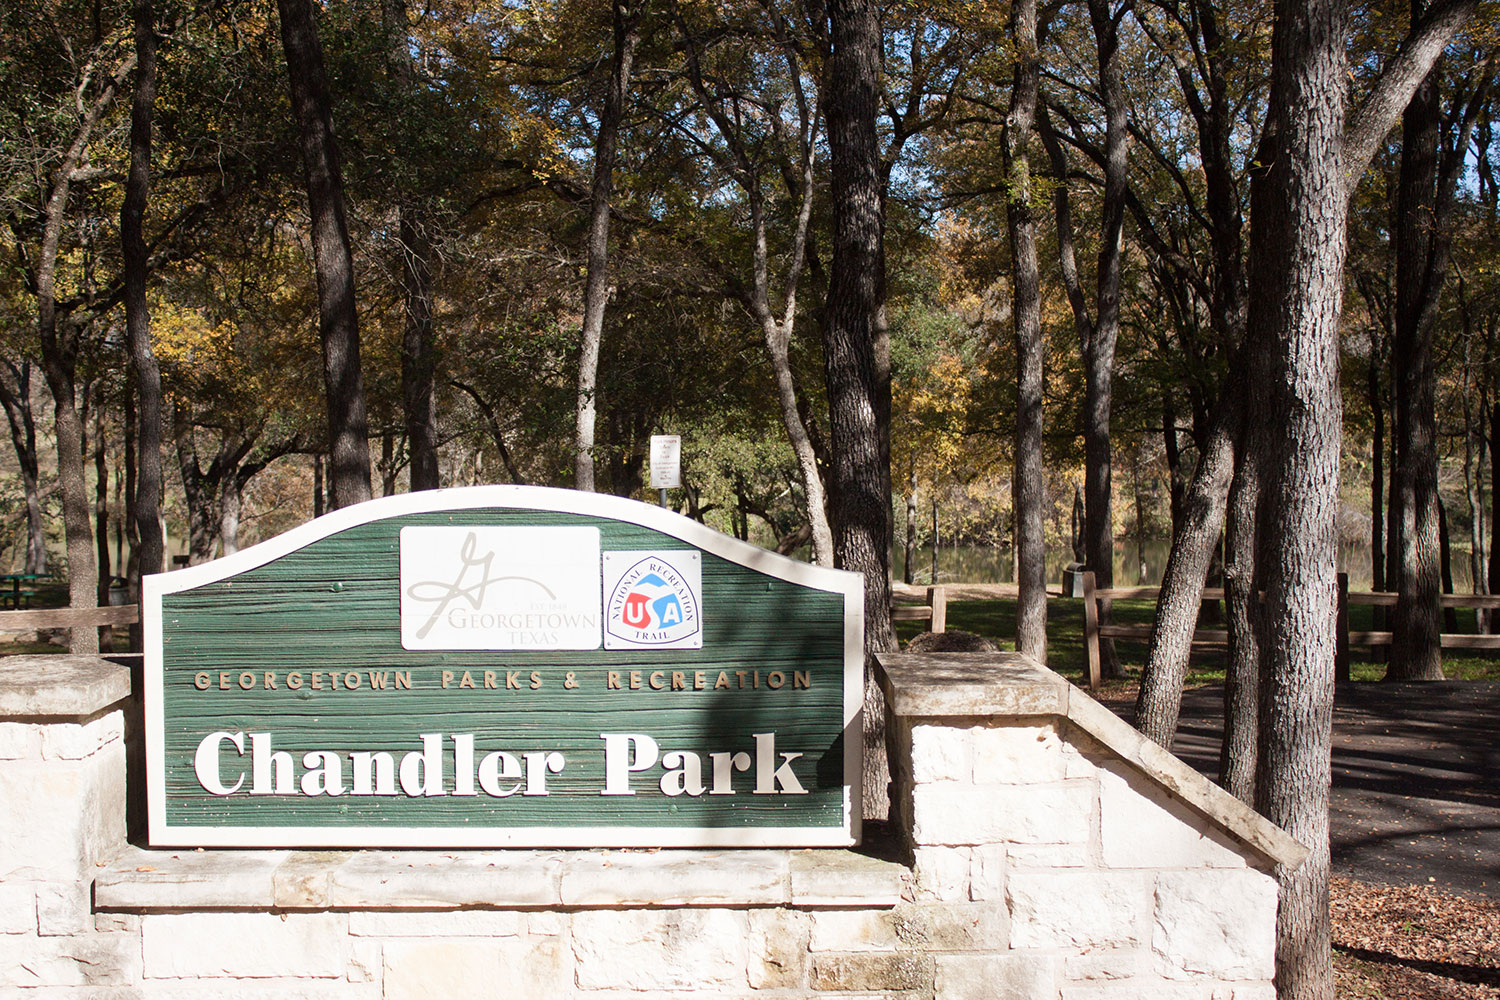 Entrance to Chandler Park in Georgetown, TX